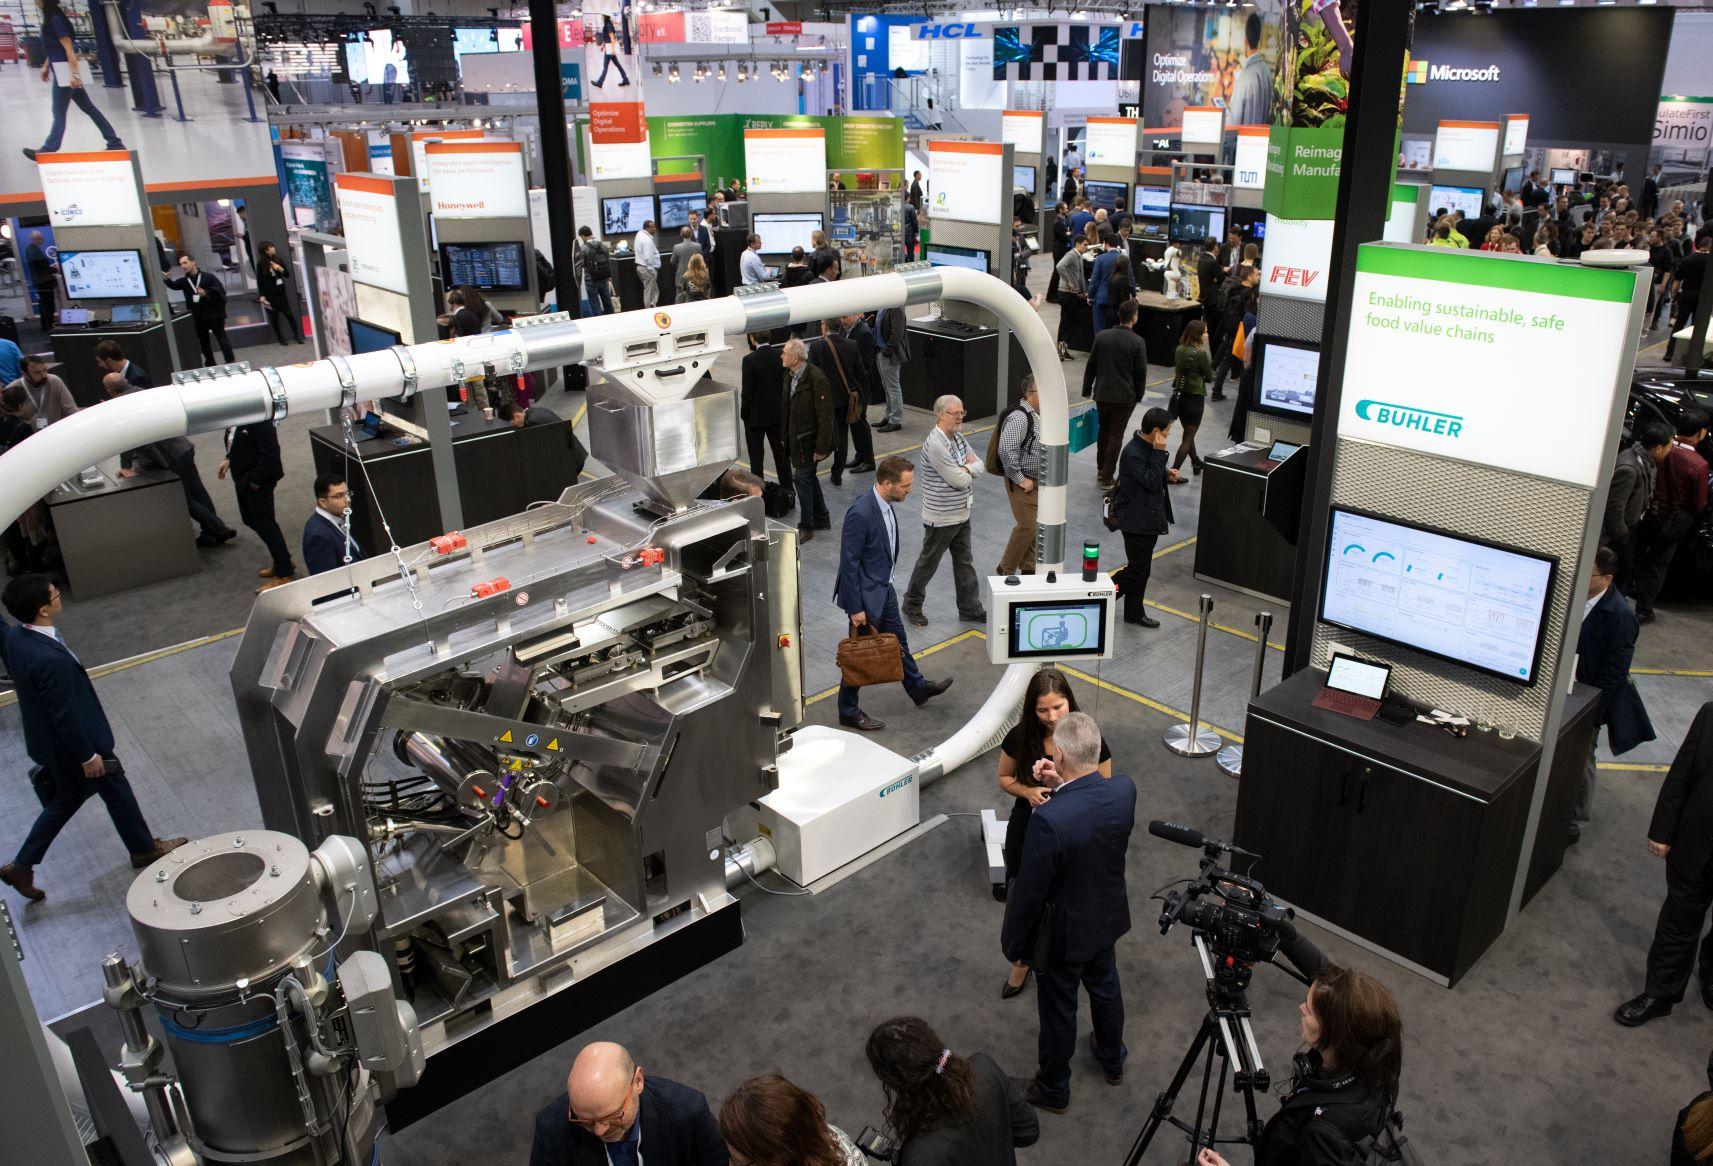 Microsoft booth at Hannover Messe 2019